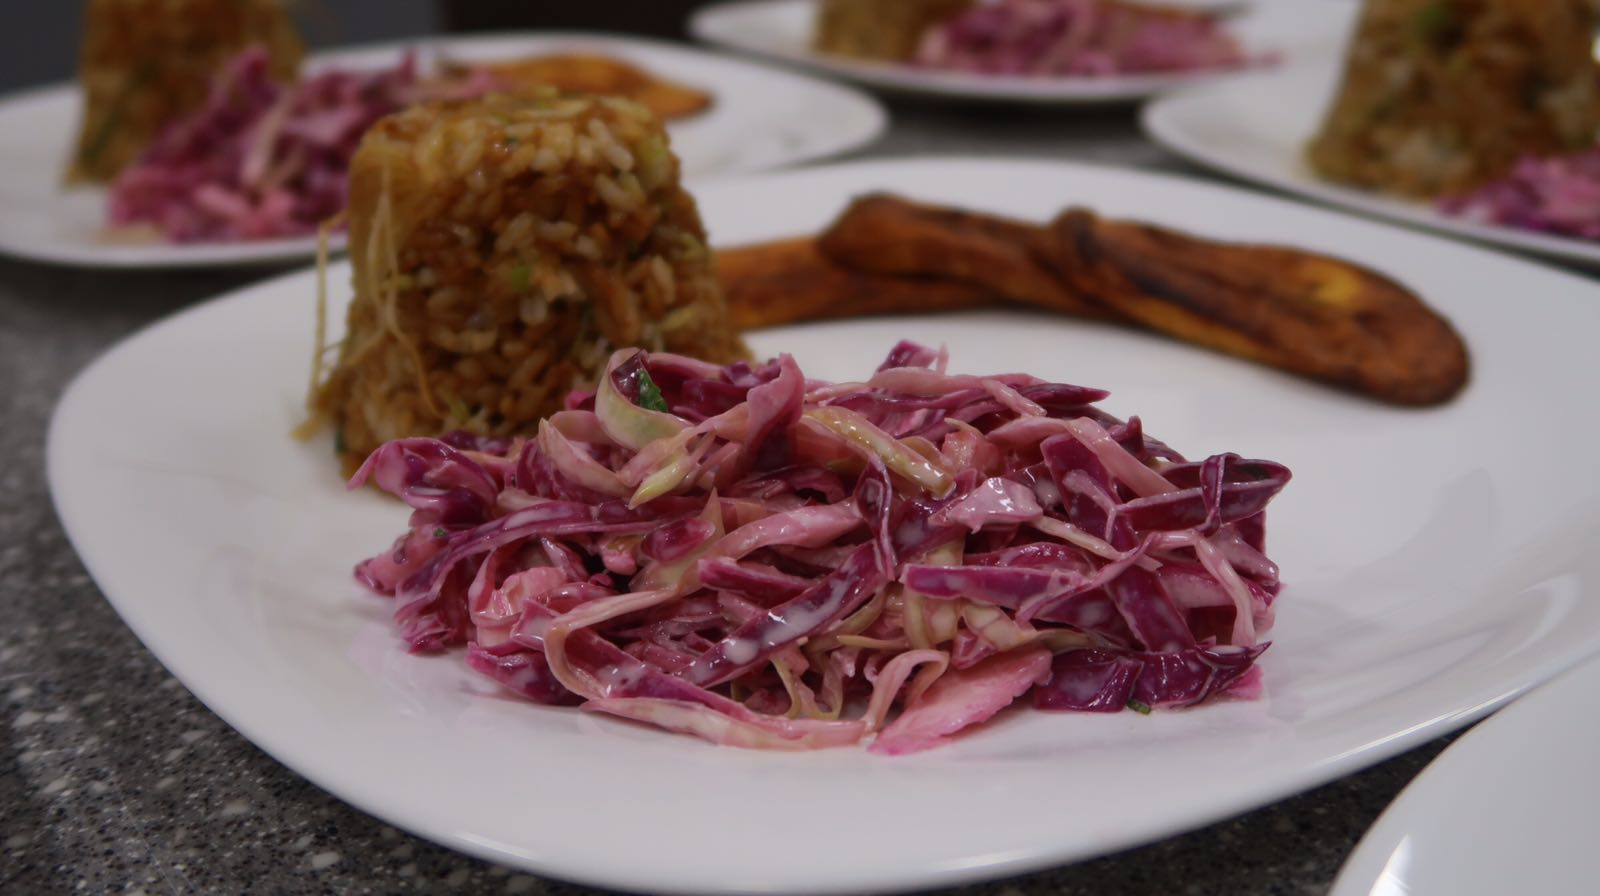 Coleslaw, flavoured rice and plantain